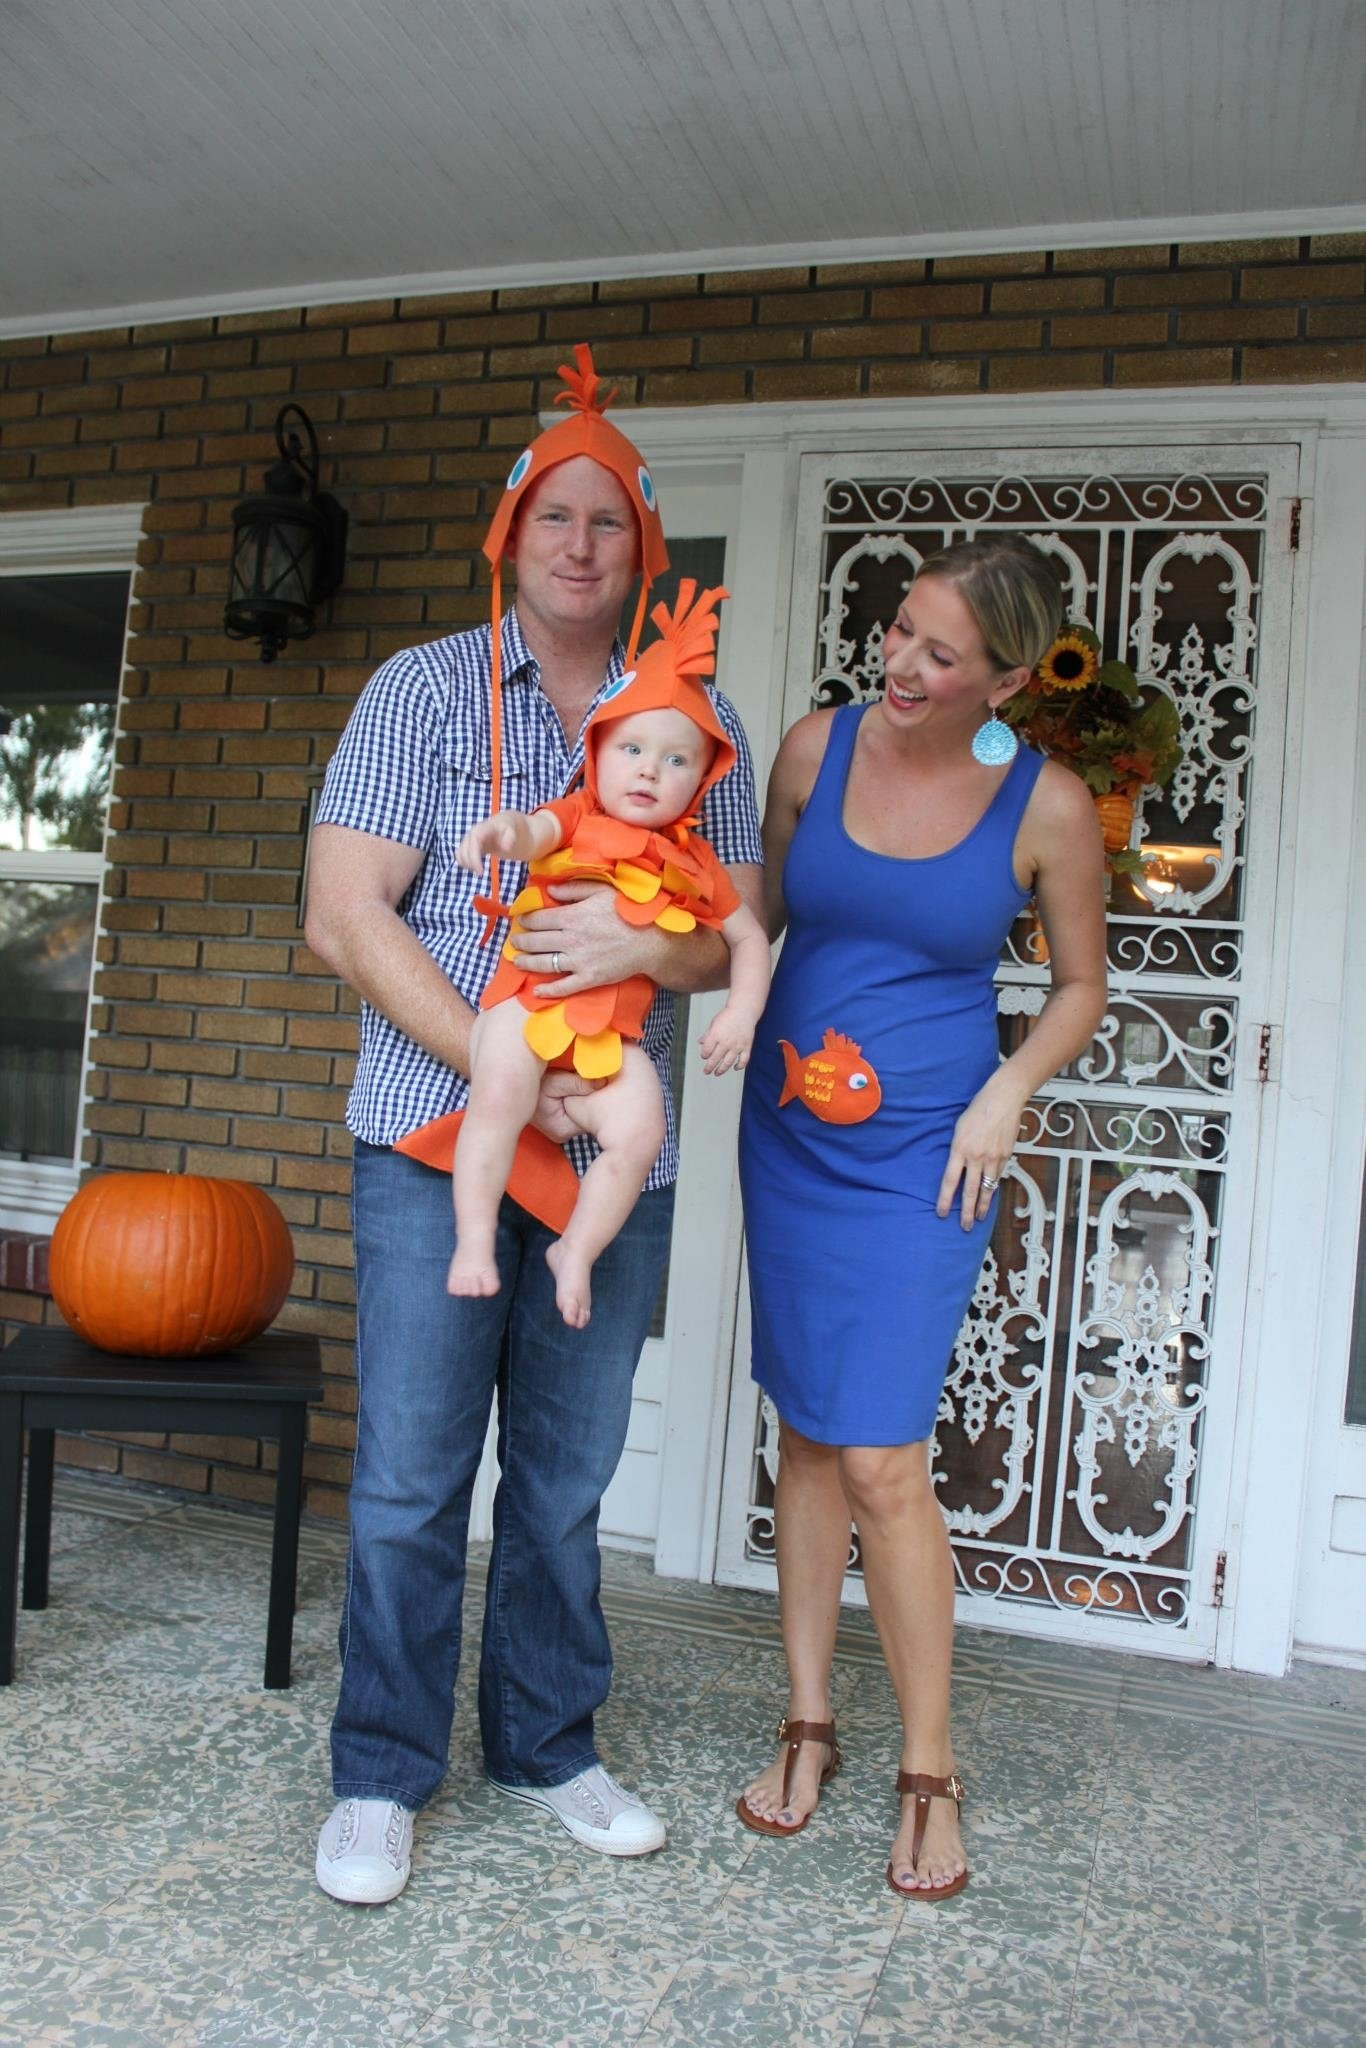 10 Spectacular Halloween Costume Ideas For 3 diy fish costume for the family no sewing 10 2020